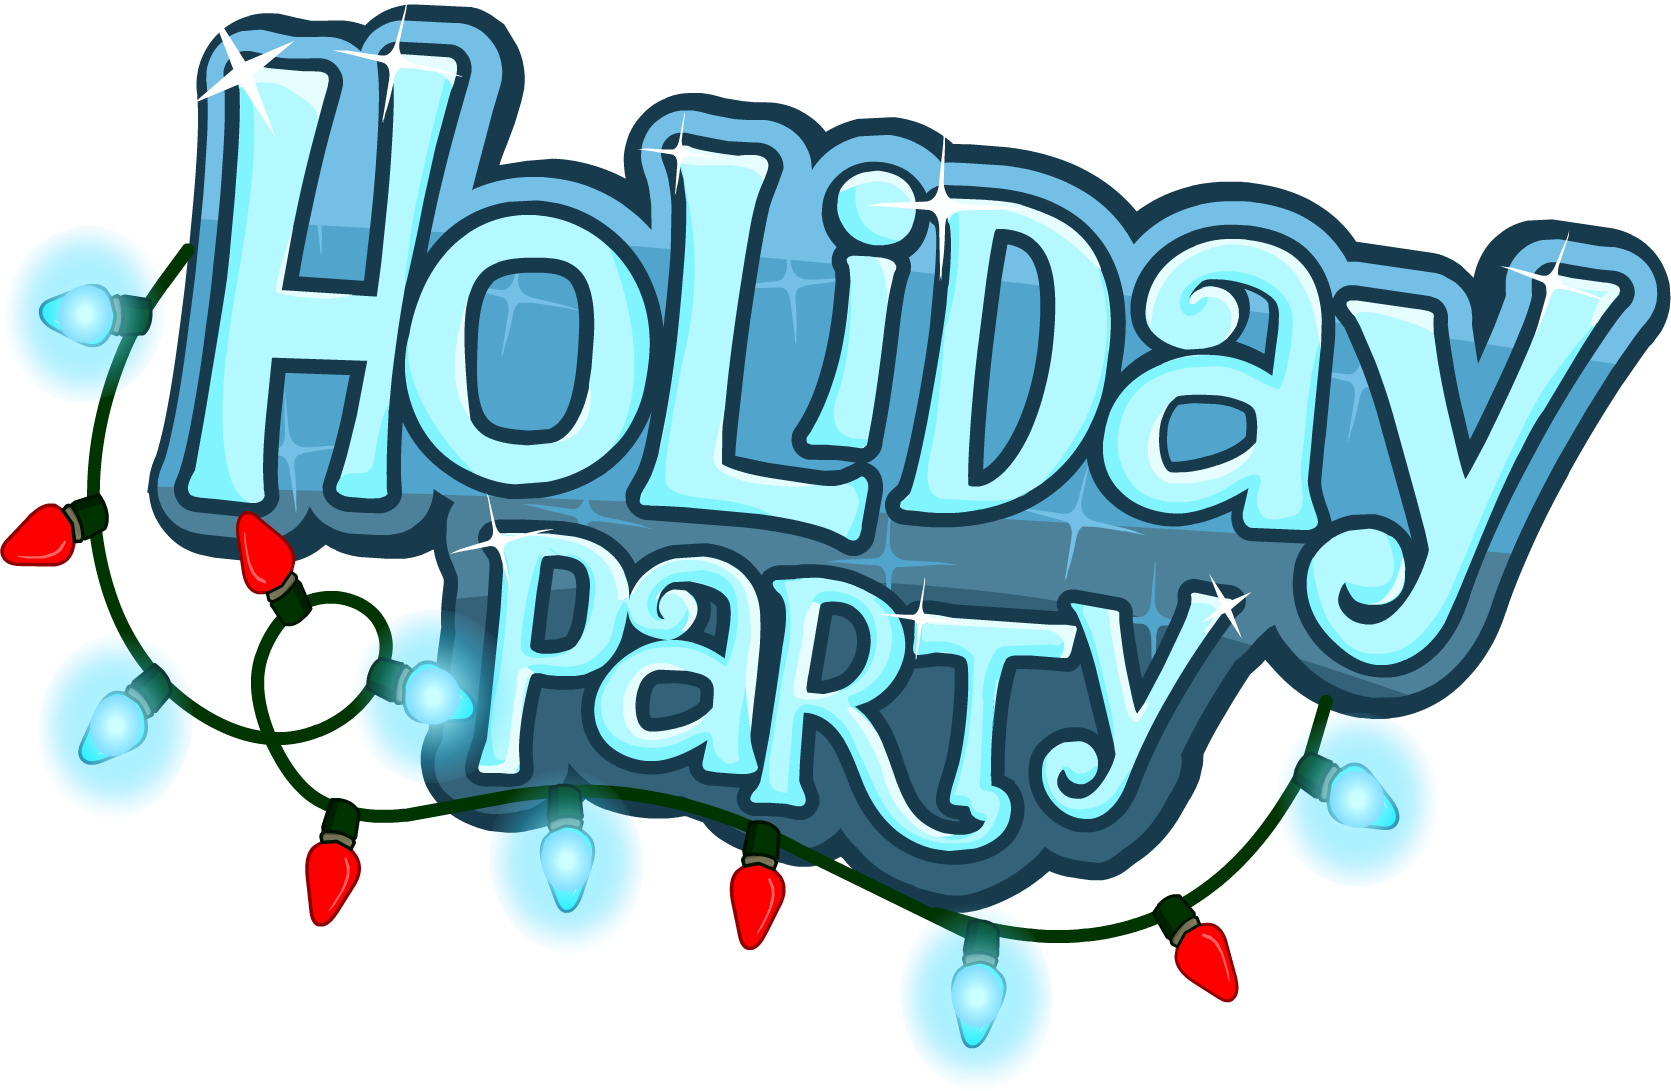 Holiday Party 2012 Logo - Holiday Party Clip Art